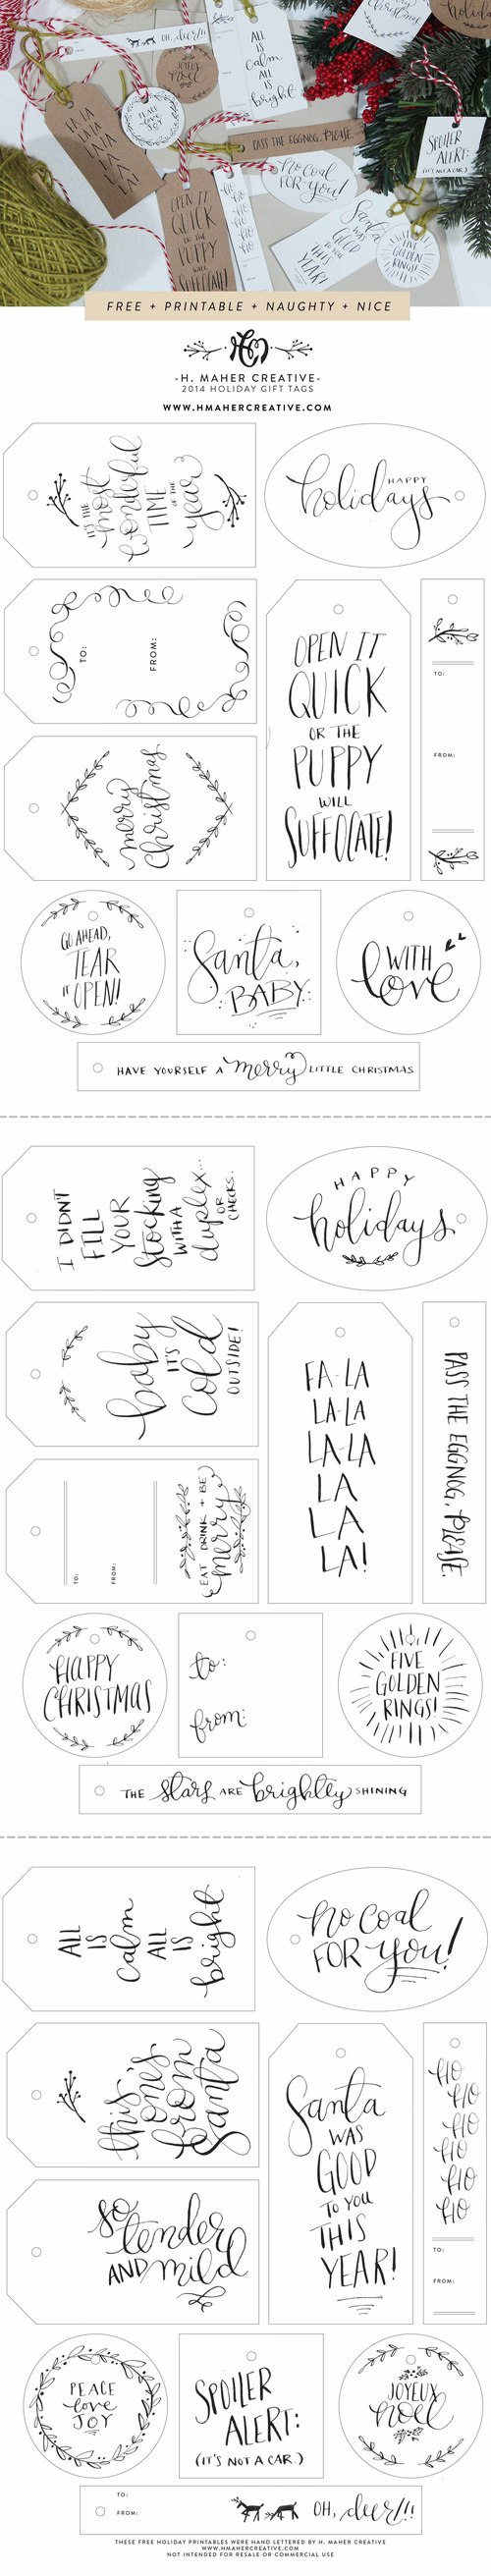 Nov 20 Naughty + Nice // 30 Free printable Holiday Gift Tags ...